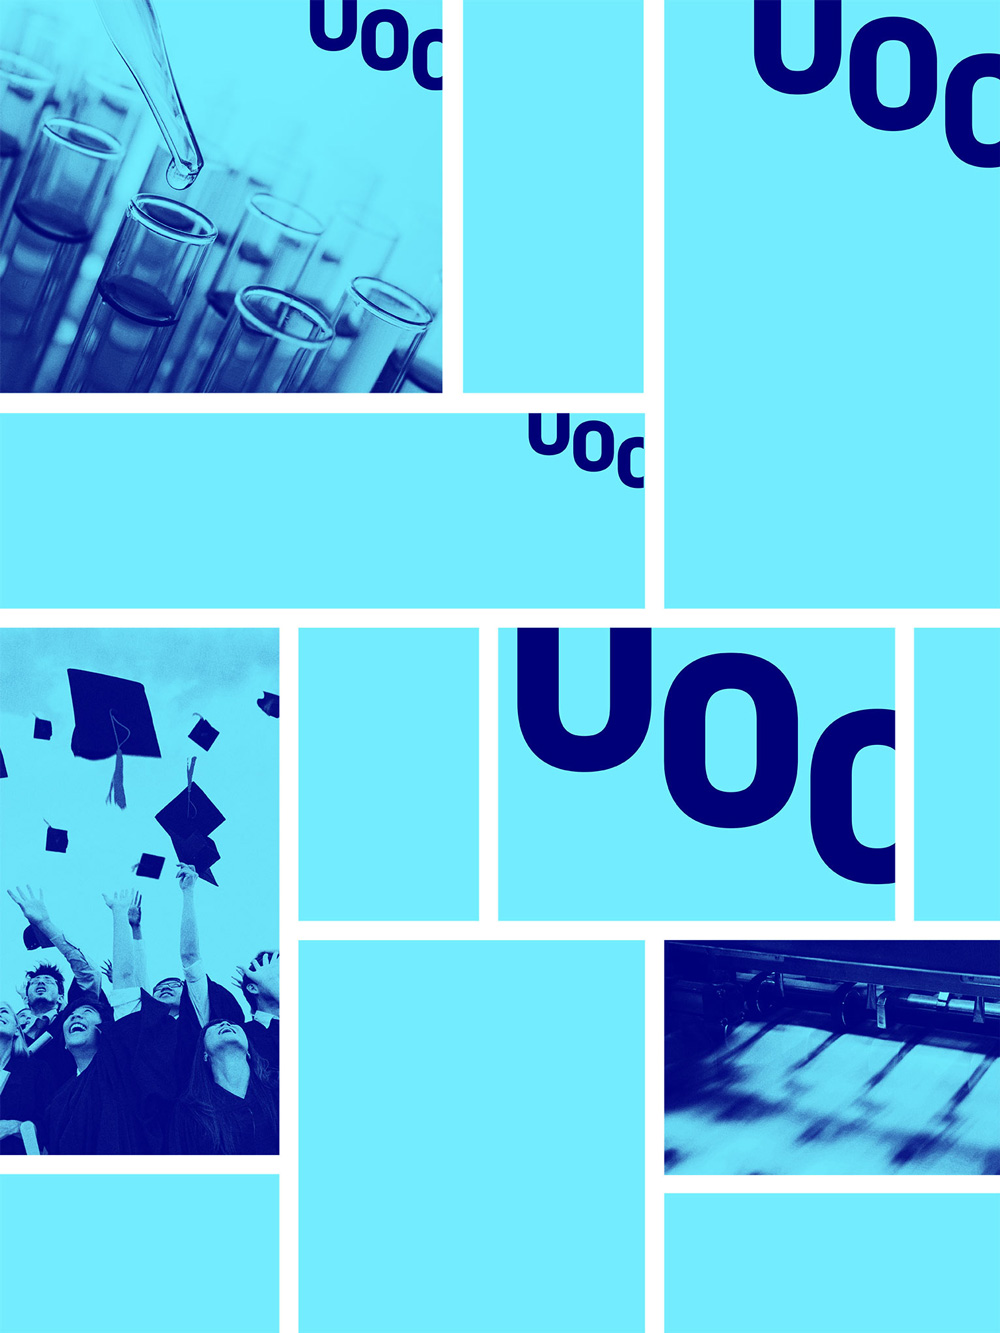 New Logo and Identity for Universitat Oberta de Catalunya by Mucho